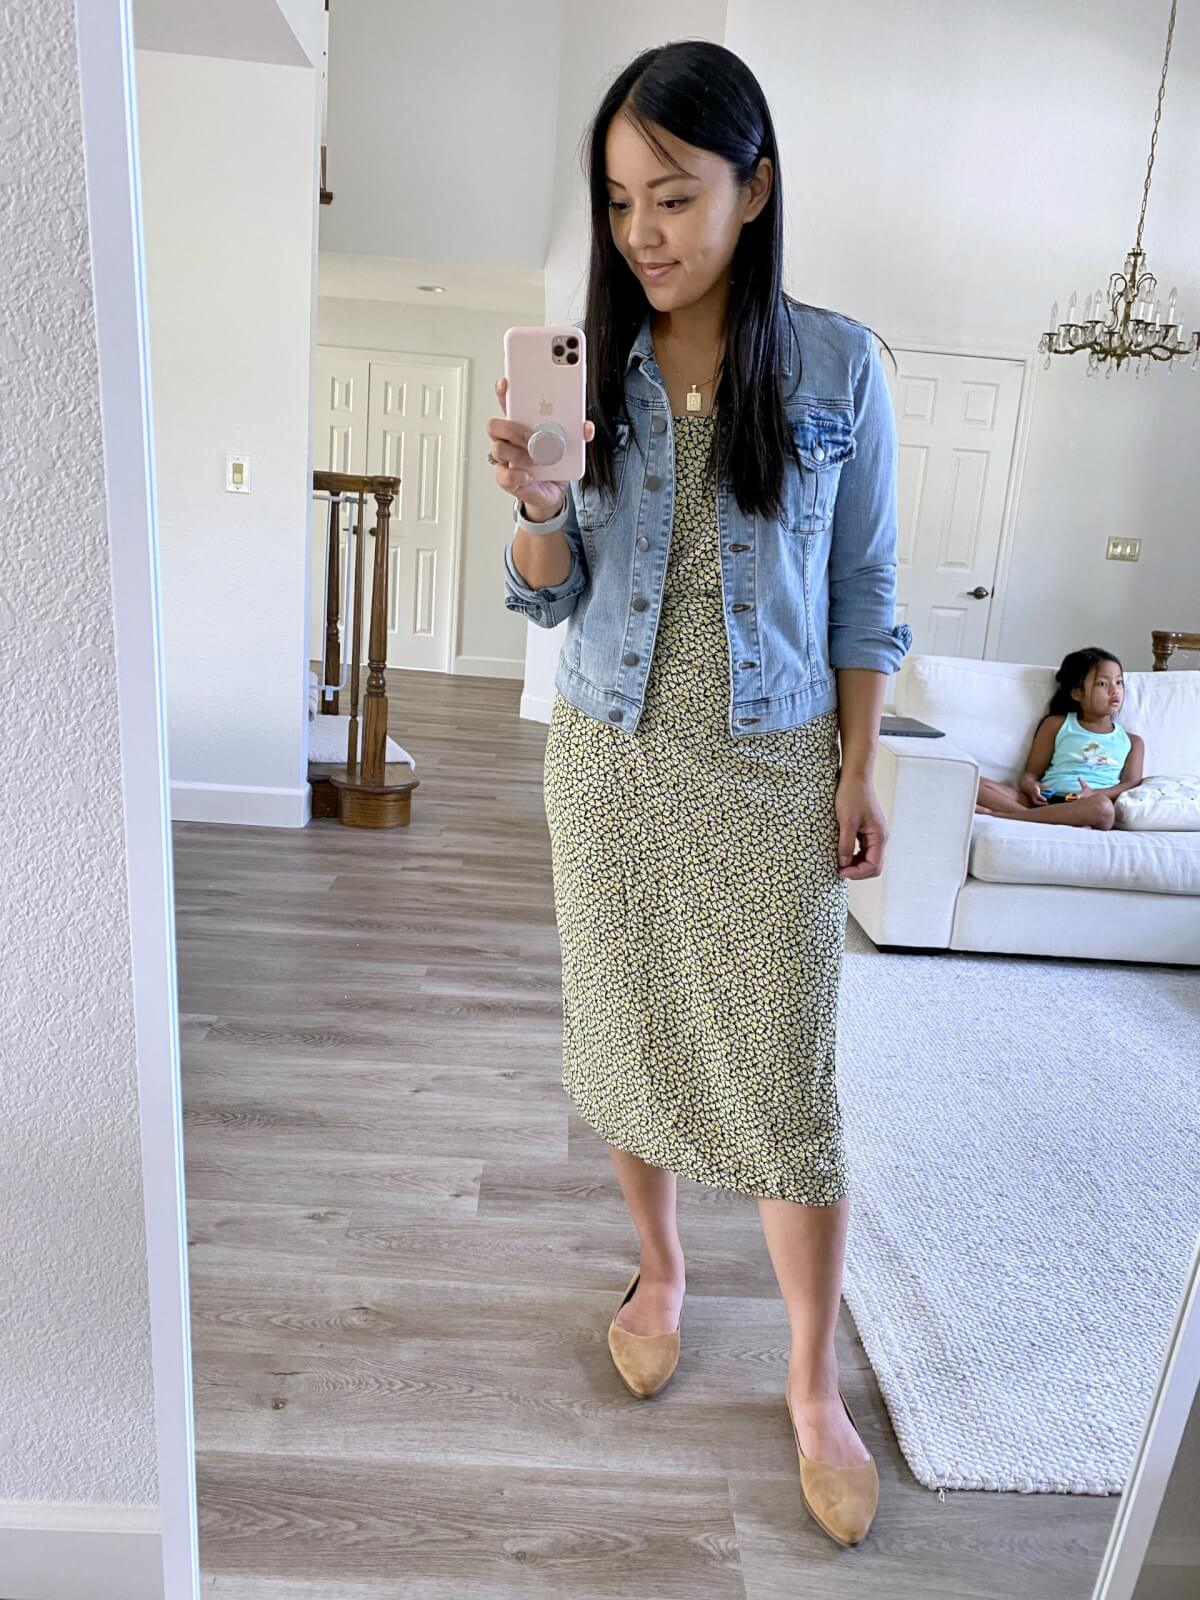 Dressy Casual Outfit: Amazon faux wrap blue and yellow print midi dress + light jean jacket + tan suede flats + gold pendant necklace